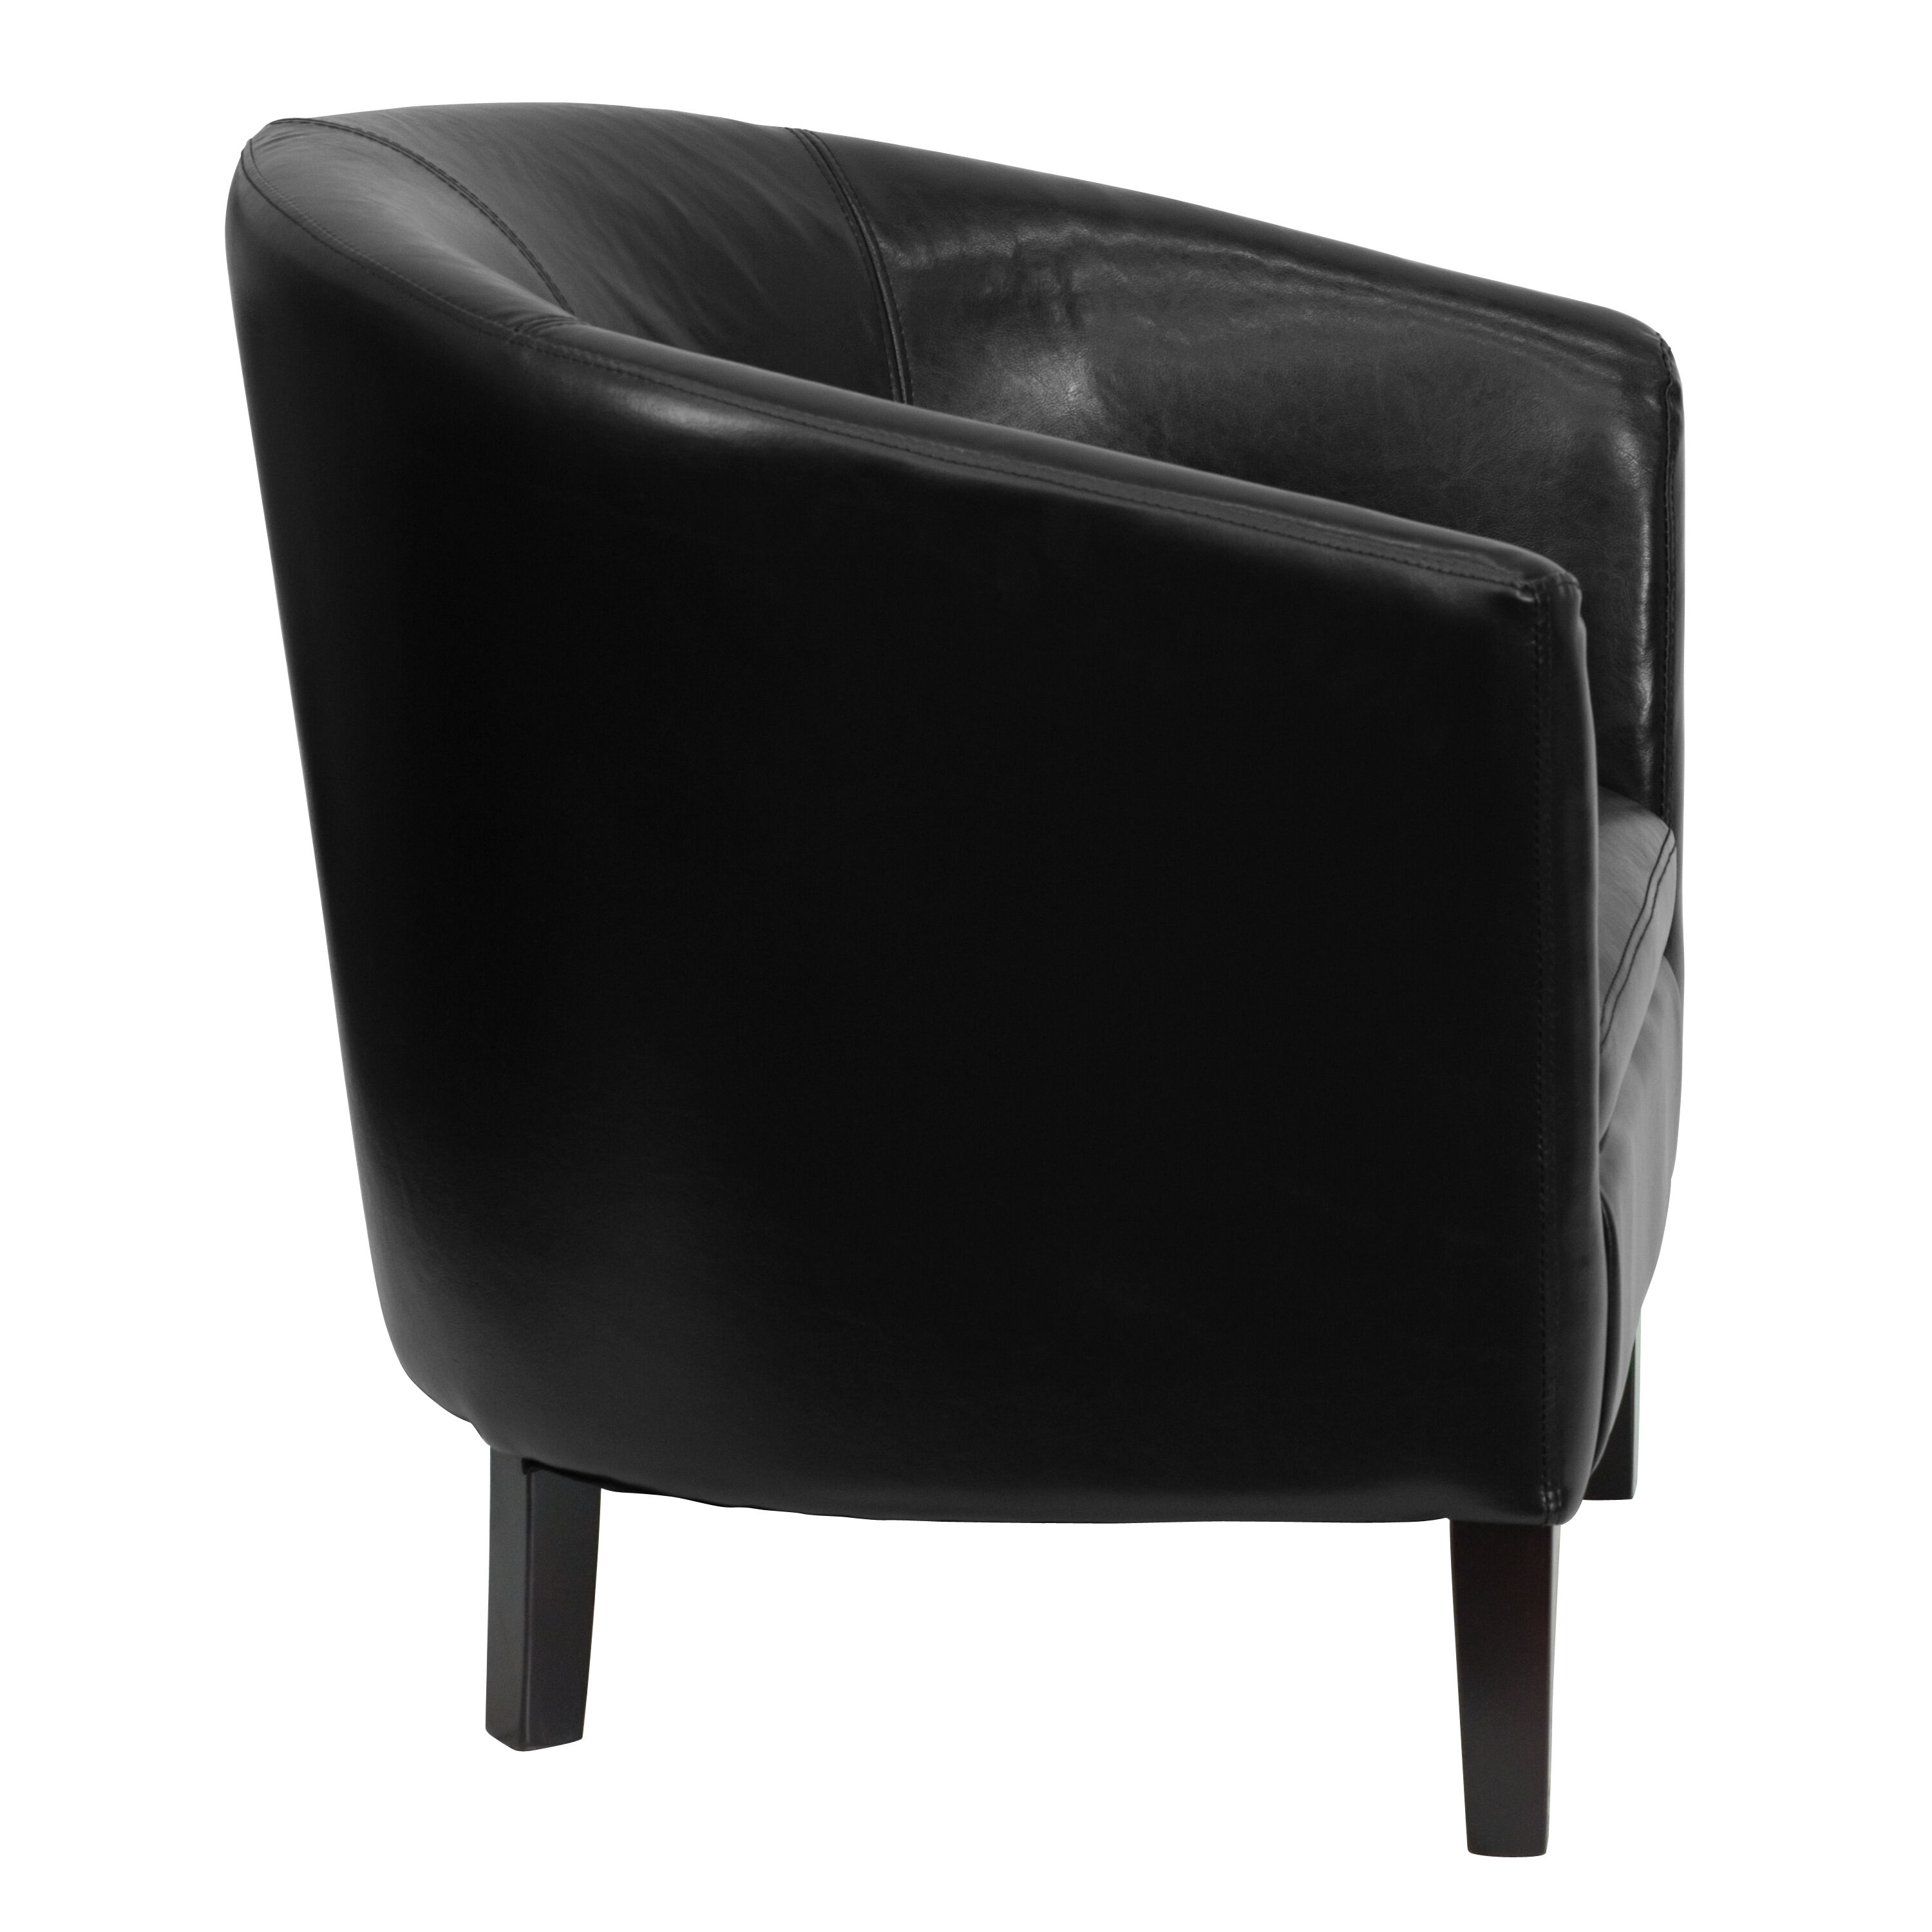 Our Black Leather Barrel Shaped Guest Chair Is On Sale Now.